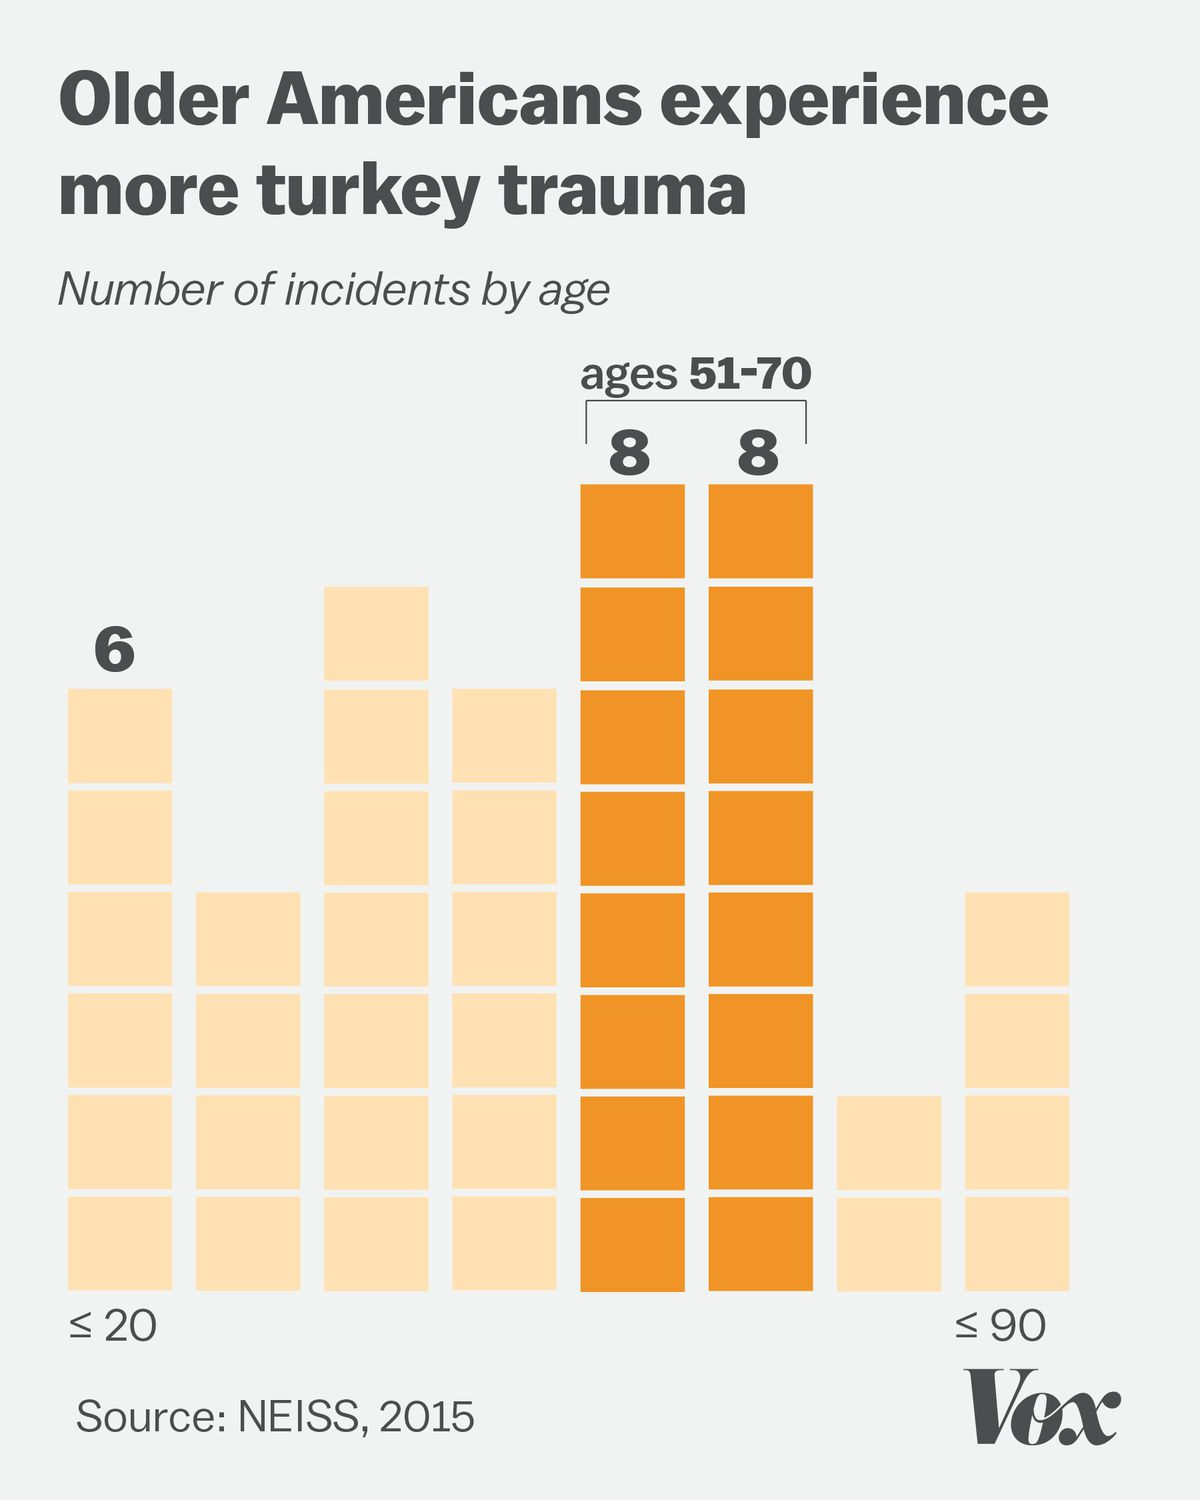 Bar chart showing that turkey-related injuries impact older Americans between the ages of 51 and 70 the most